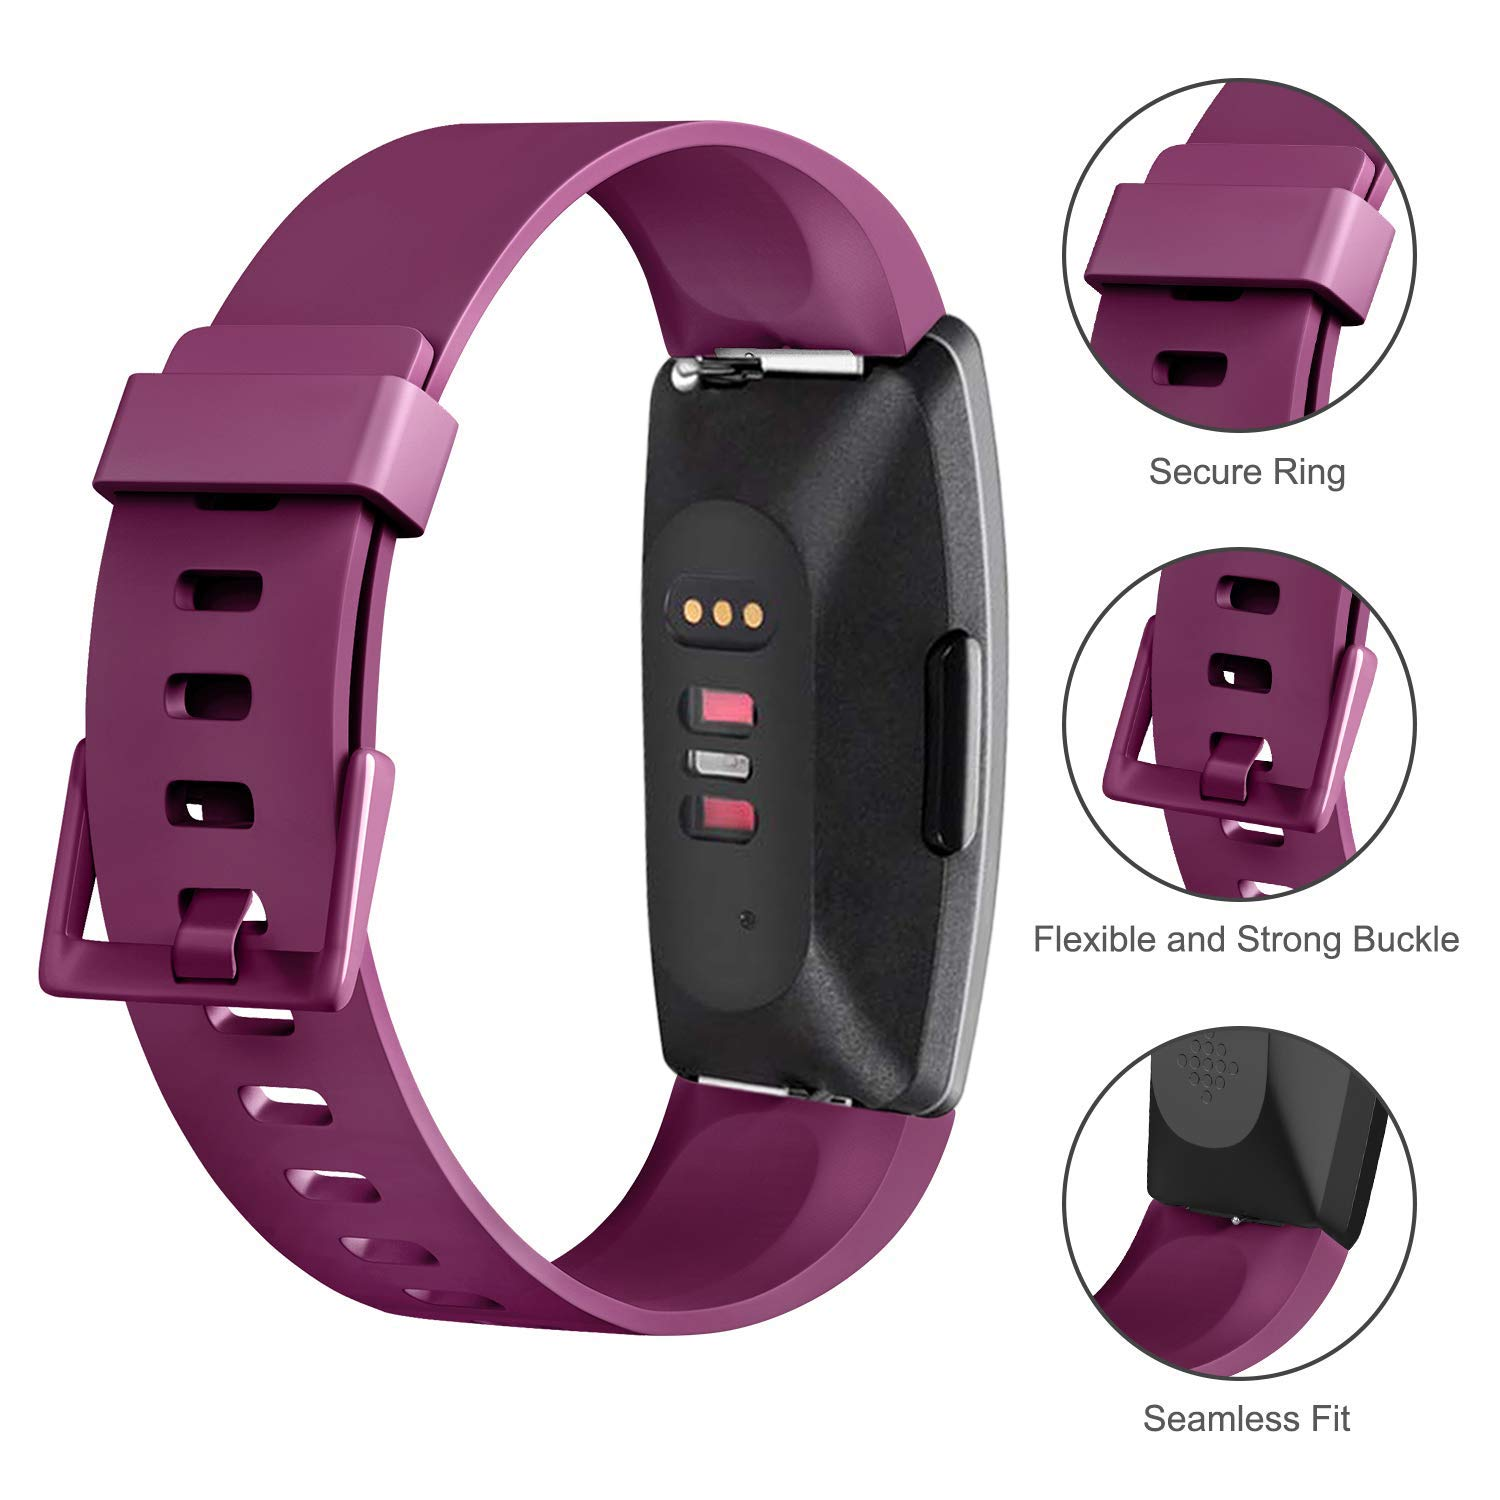 Tkasing Soft TPU Bands Compatible with Fitbit Inspire HR Fitbit Inspire Fitbit Ace 2 Wristbands Sports Waterproof Wristbands for Fitbit Inspire HR for Women Men